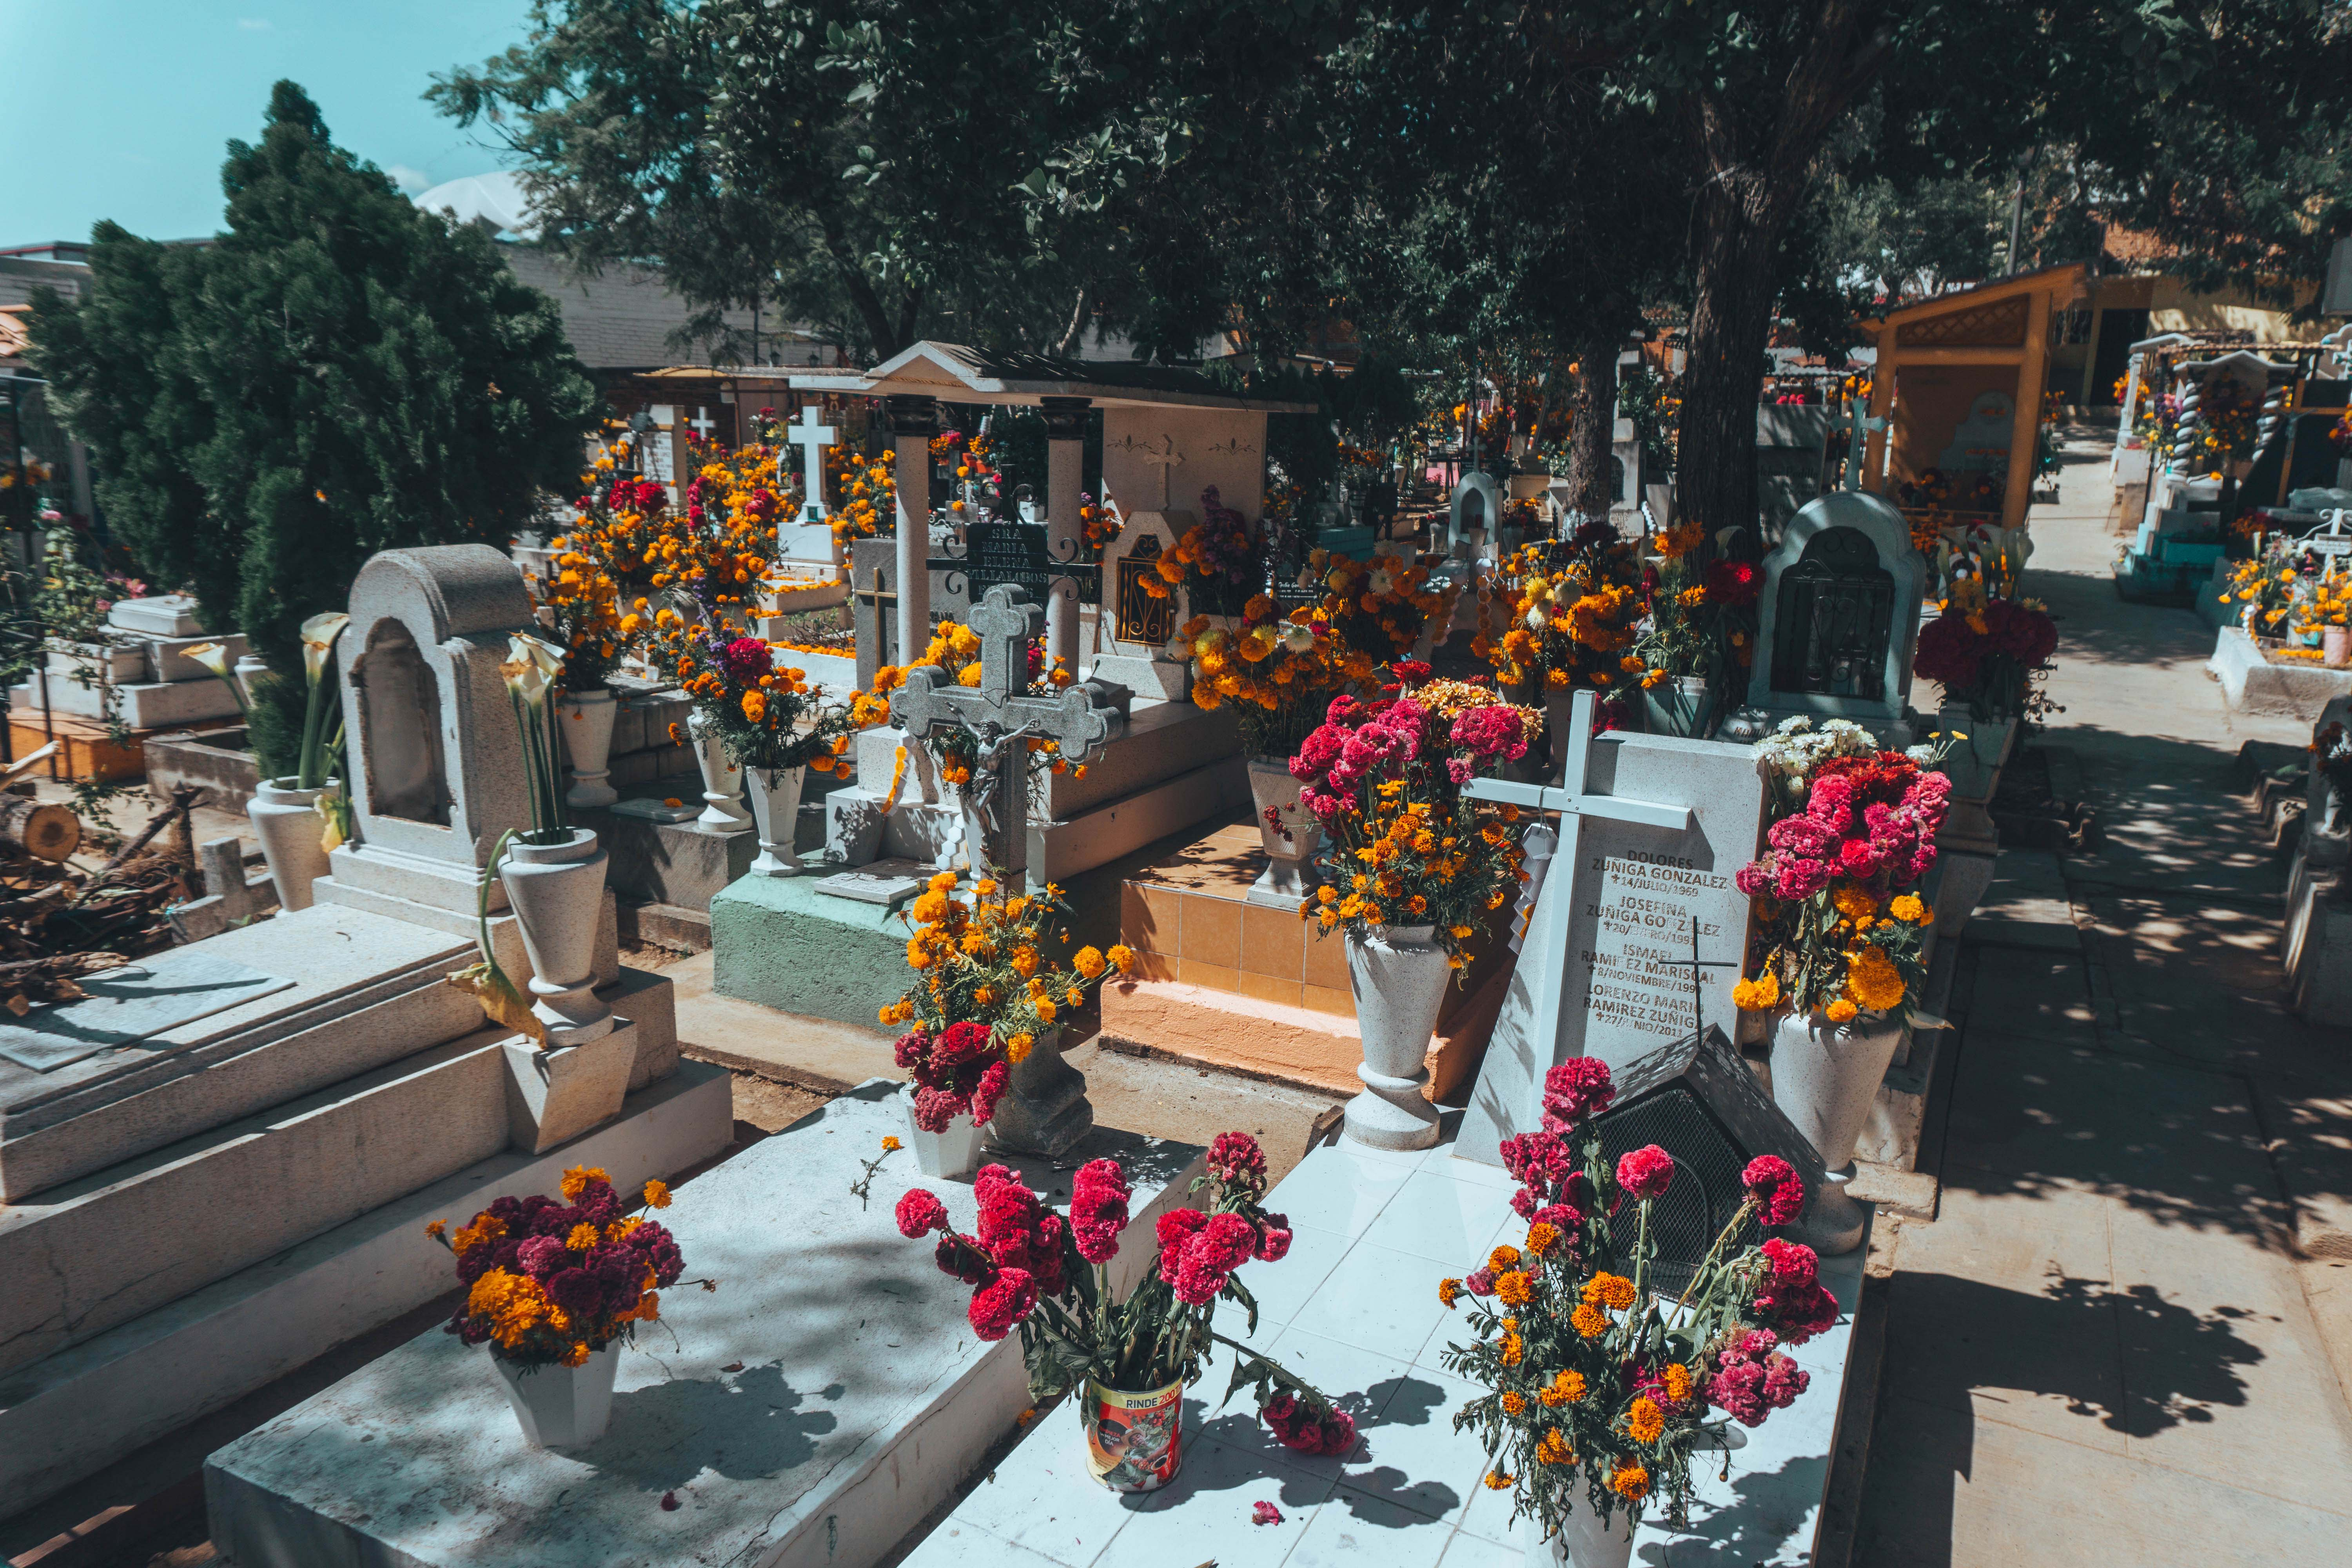 Day of the Dead Graves at a graveyard